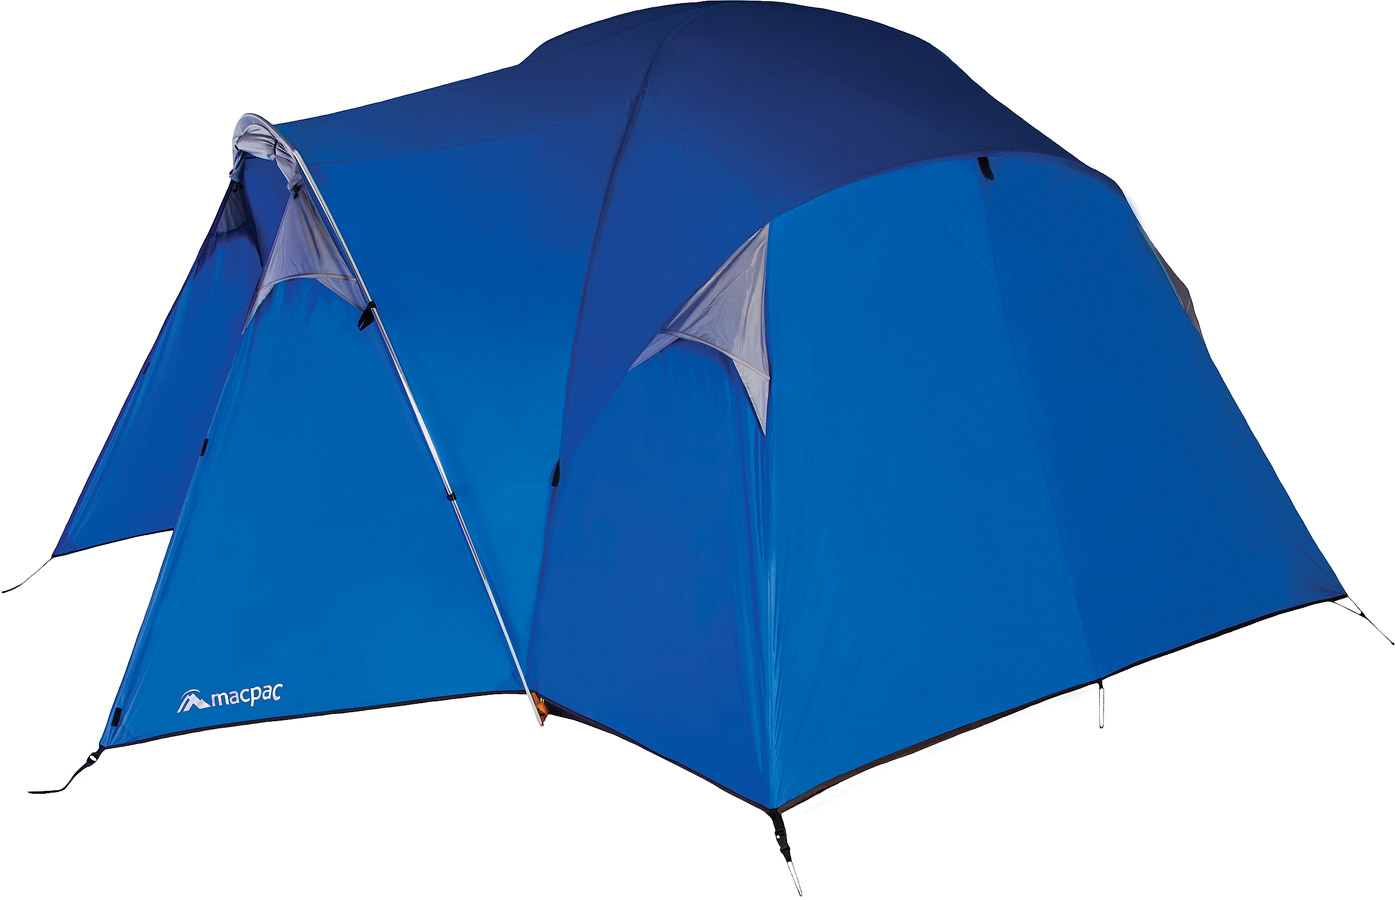 Macpac Wanaka Tent u2013 6 person tent  sc 1 st  Get Ready For Outdoors : macpac tents uk - memphite.com